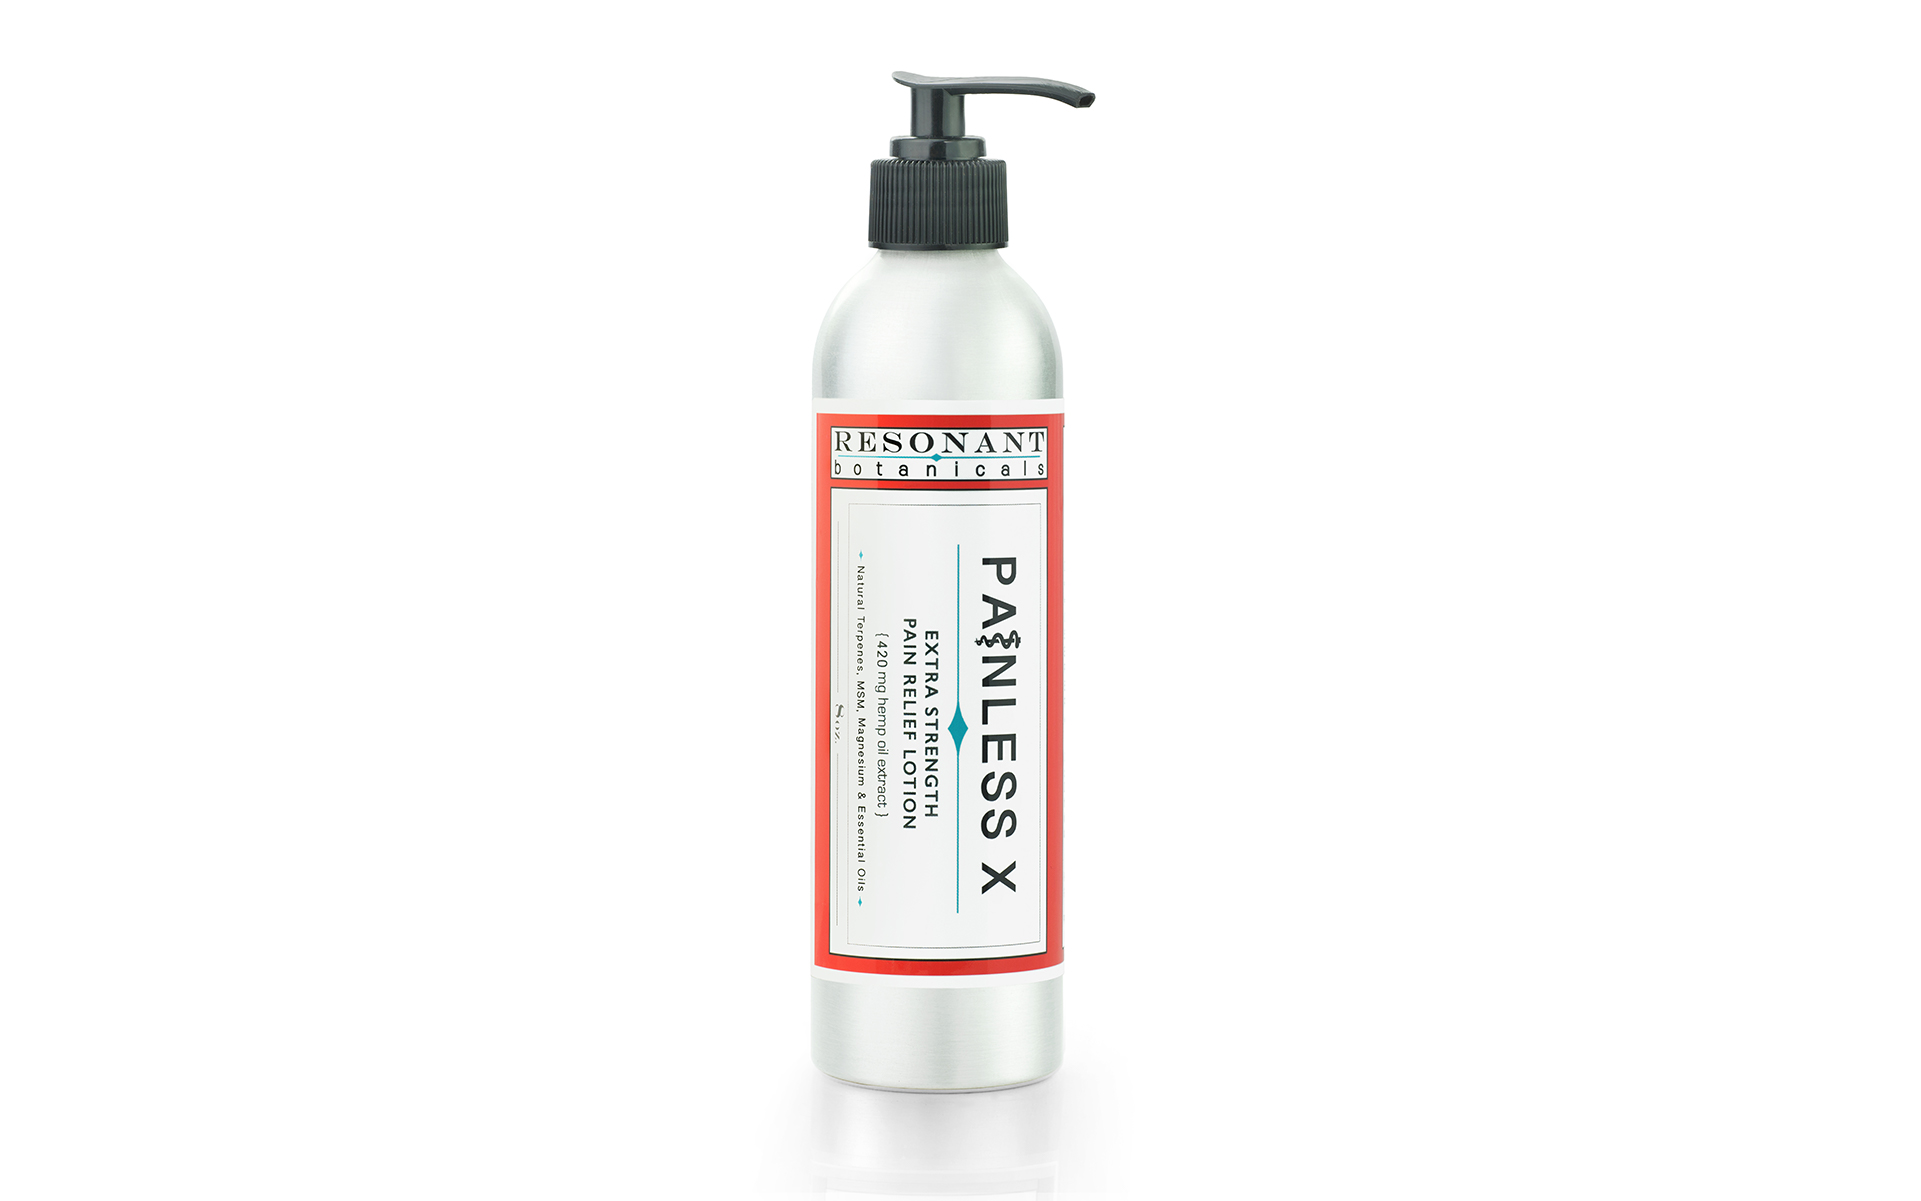 Resonant Botanicals Painless X lotion product shot